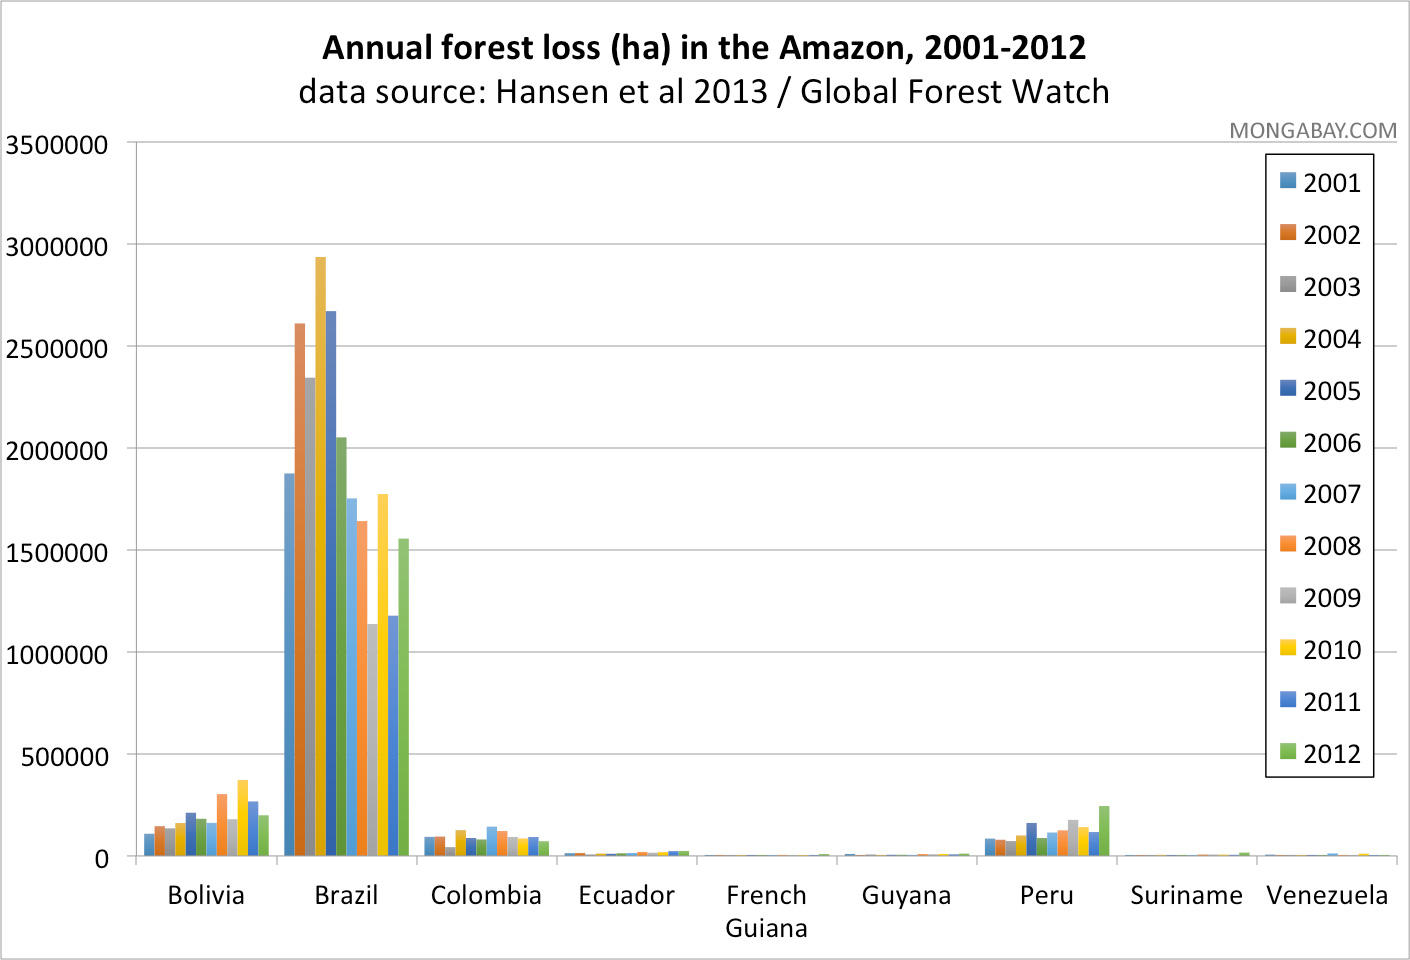 Annual forest loss in the Amazon